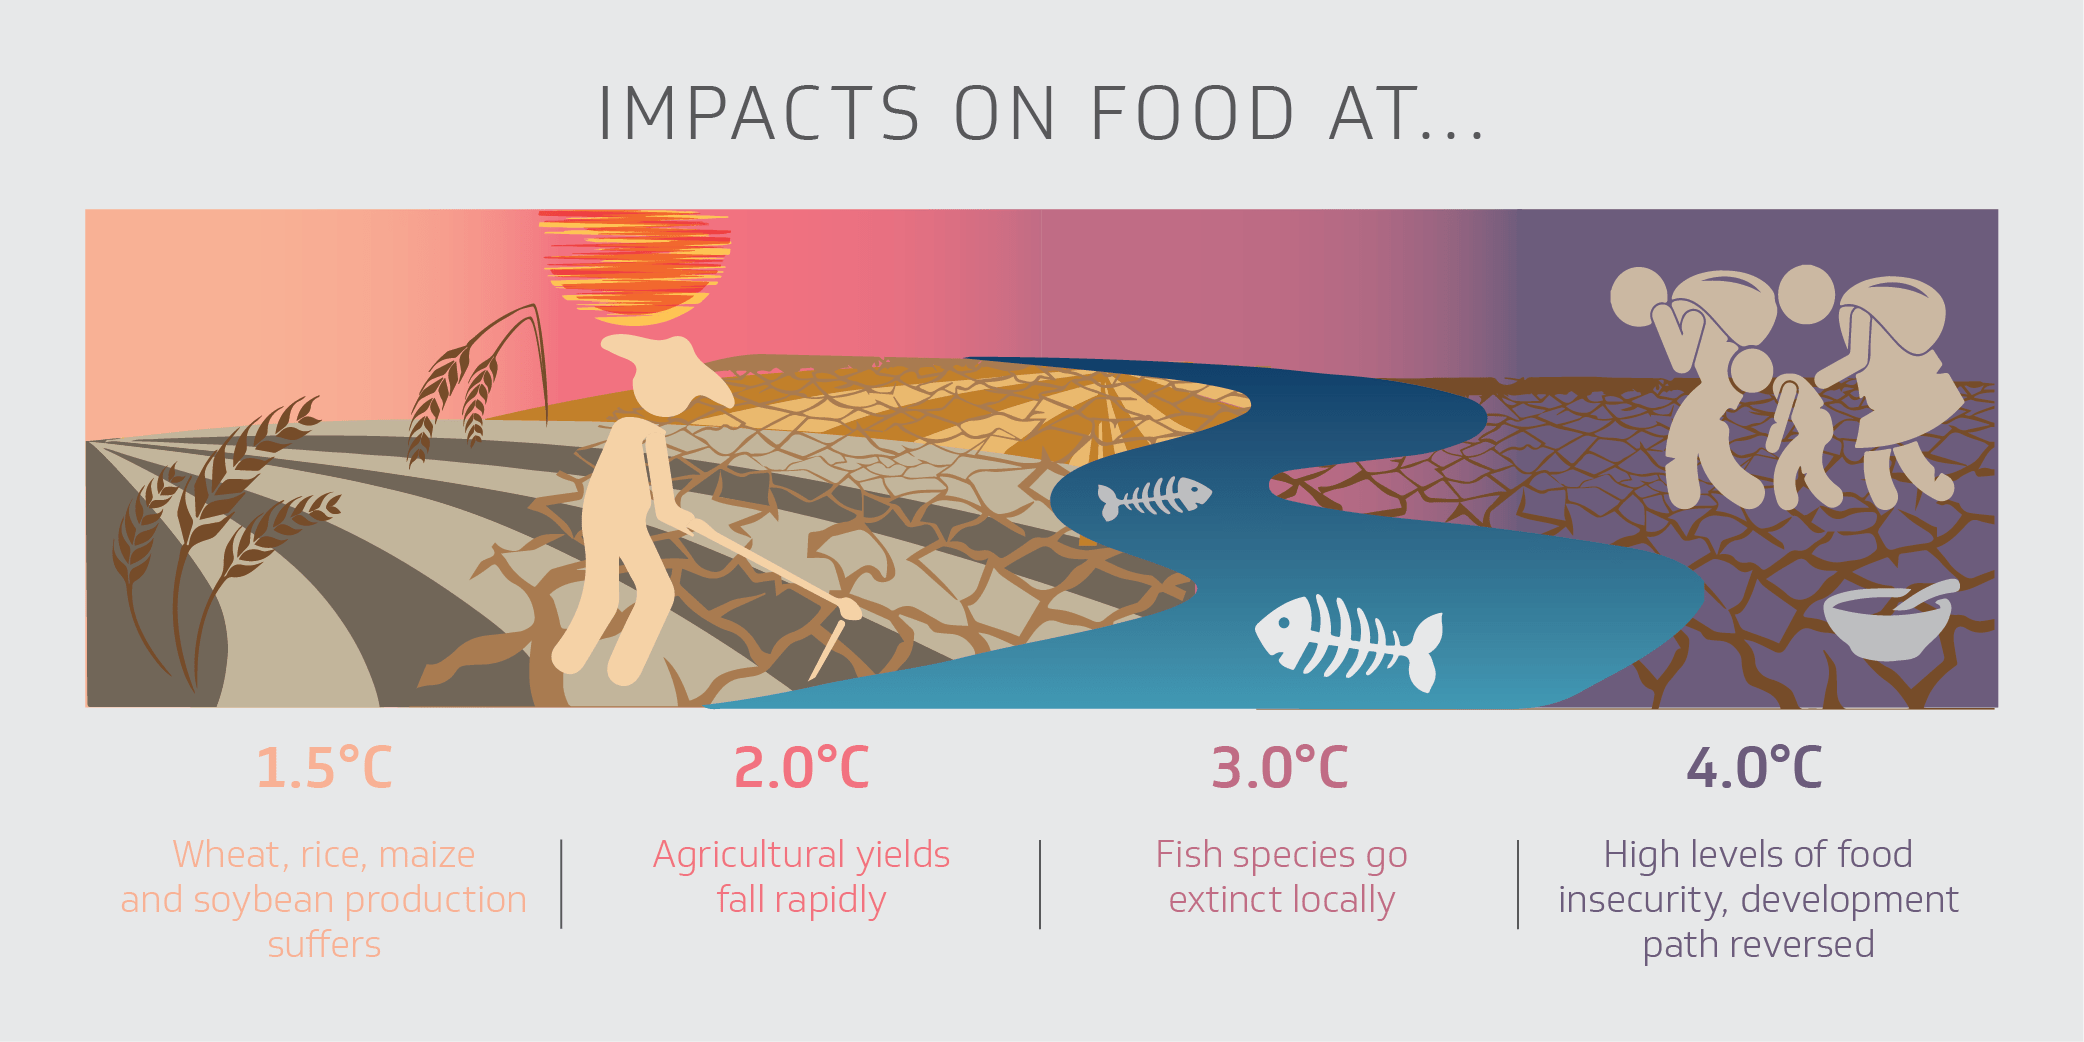 Comparing climate impacts at 1.5°C, 2°C, 3°C and 4°C